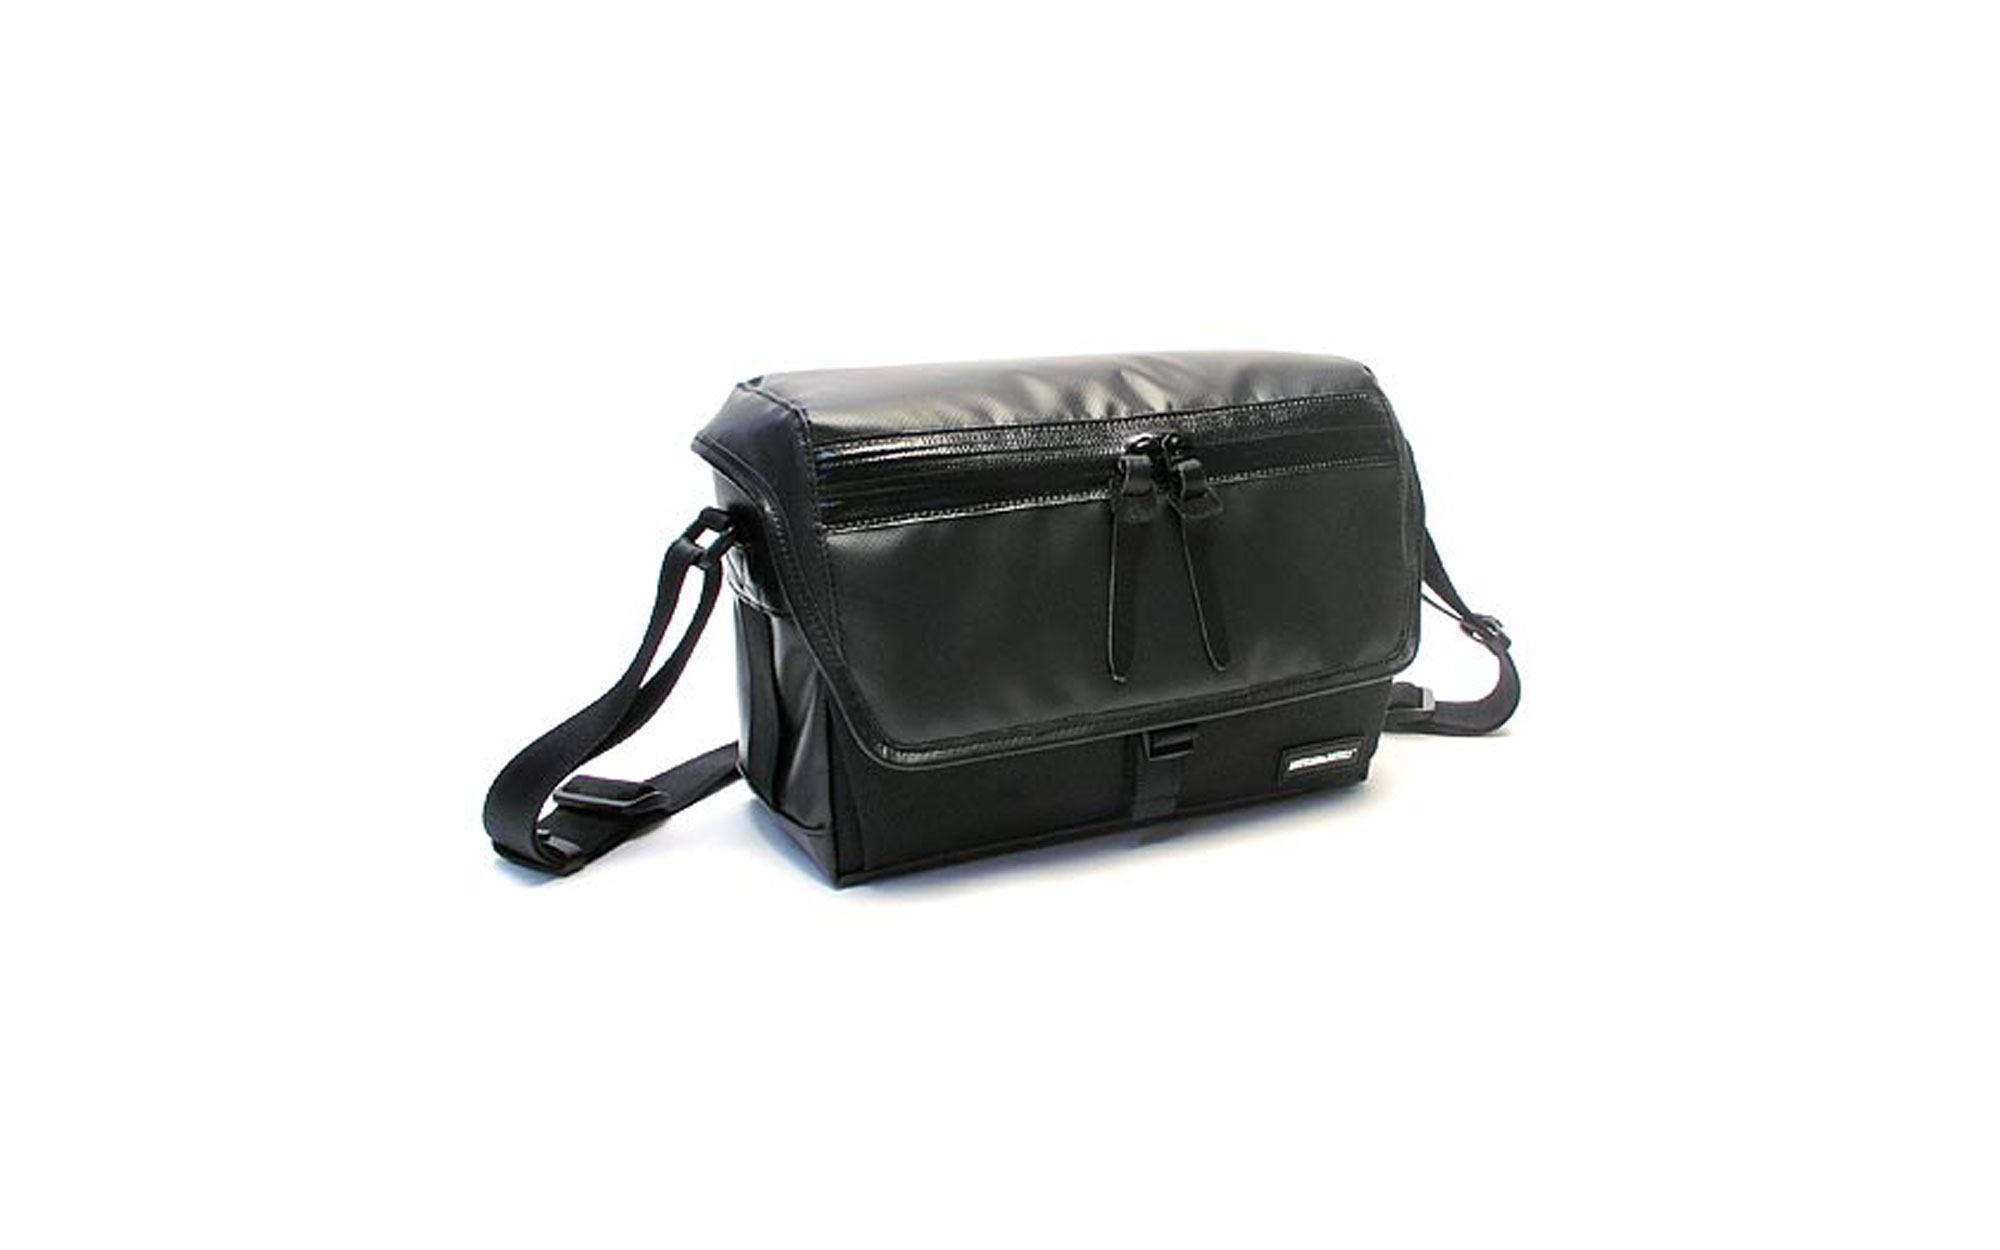 Camera Bags - Torpedo Bag Artisan and Artist